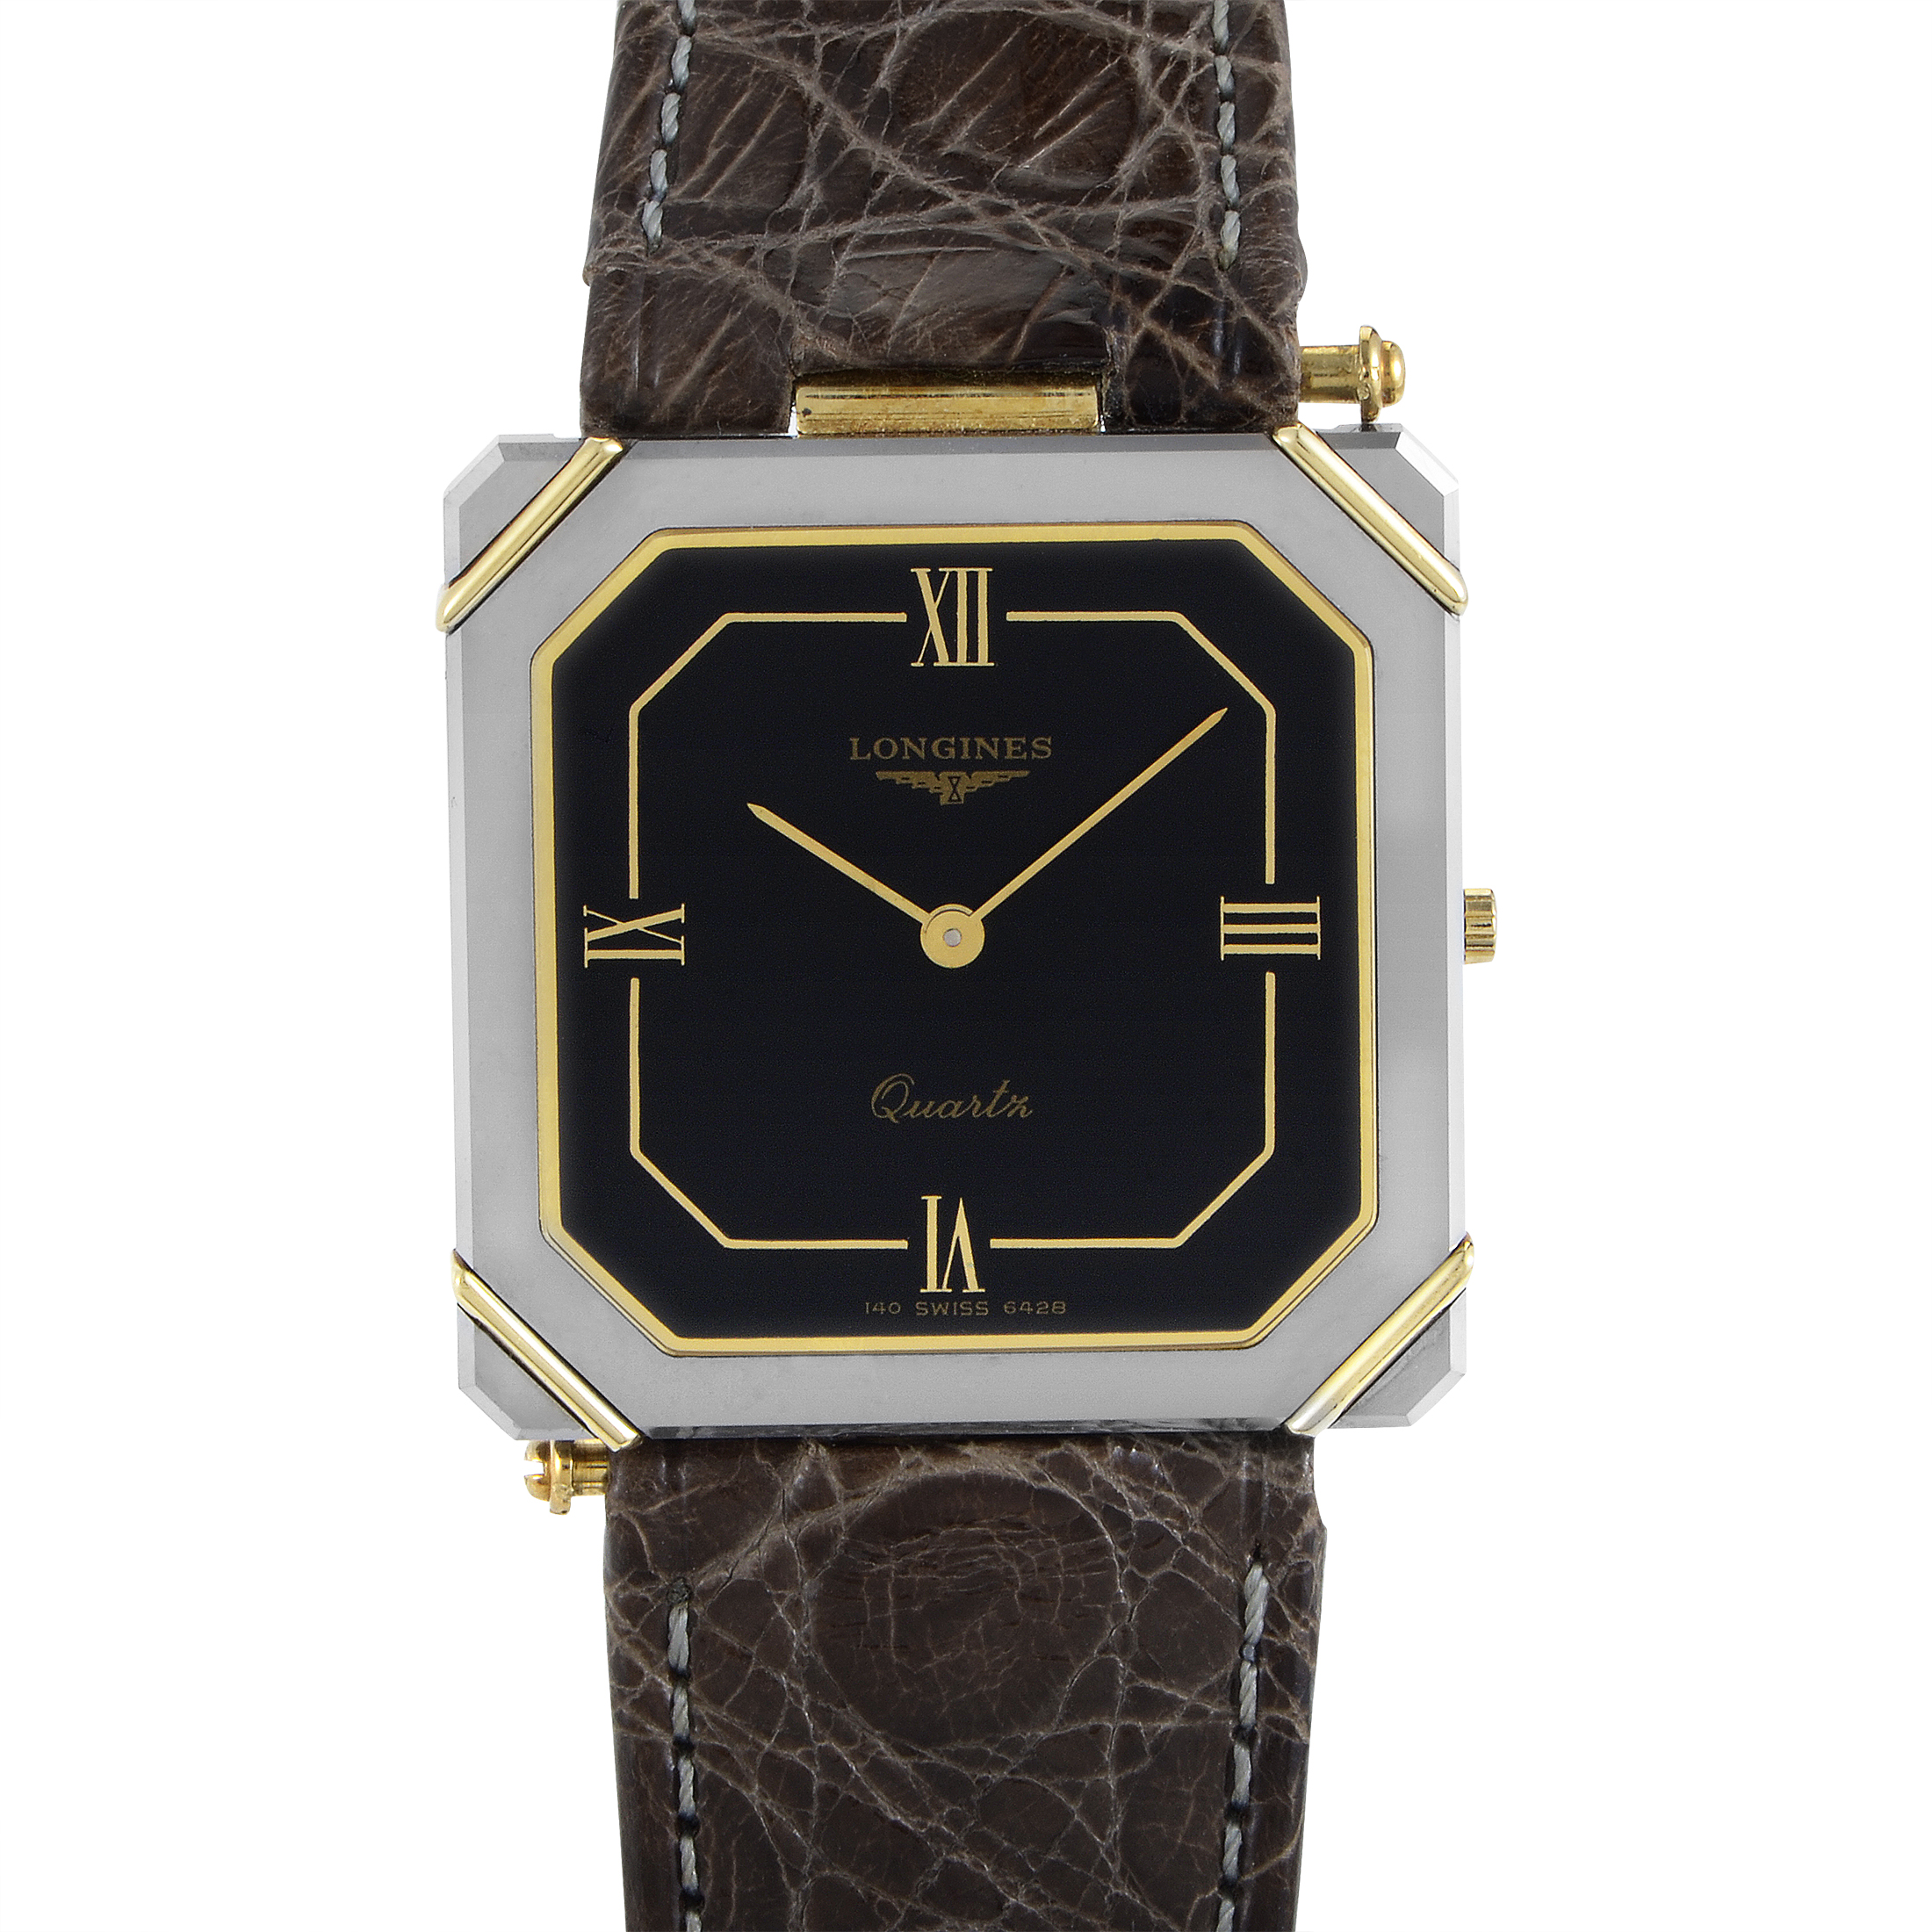 XL 24 Men's Stainless Steel Square Quartz Watch L4.690.4.92.3